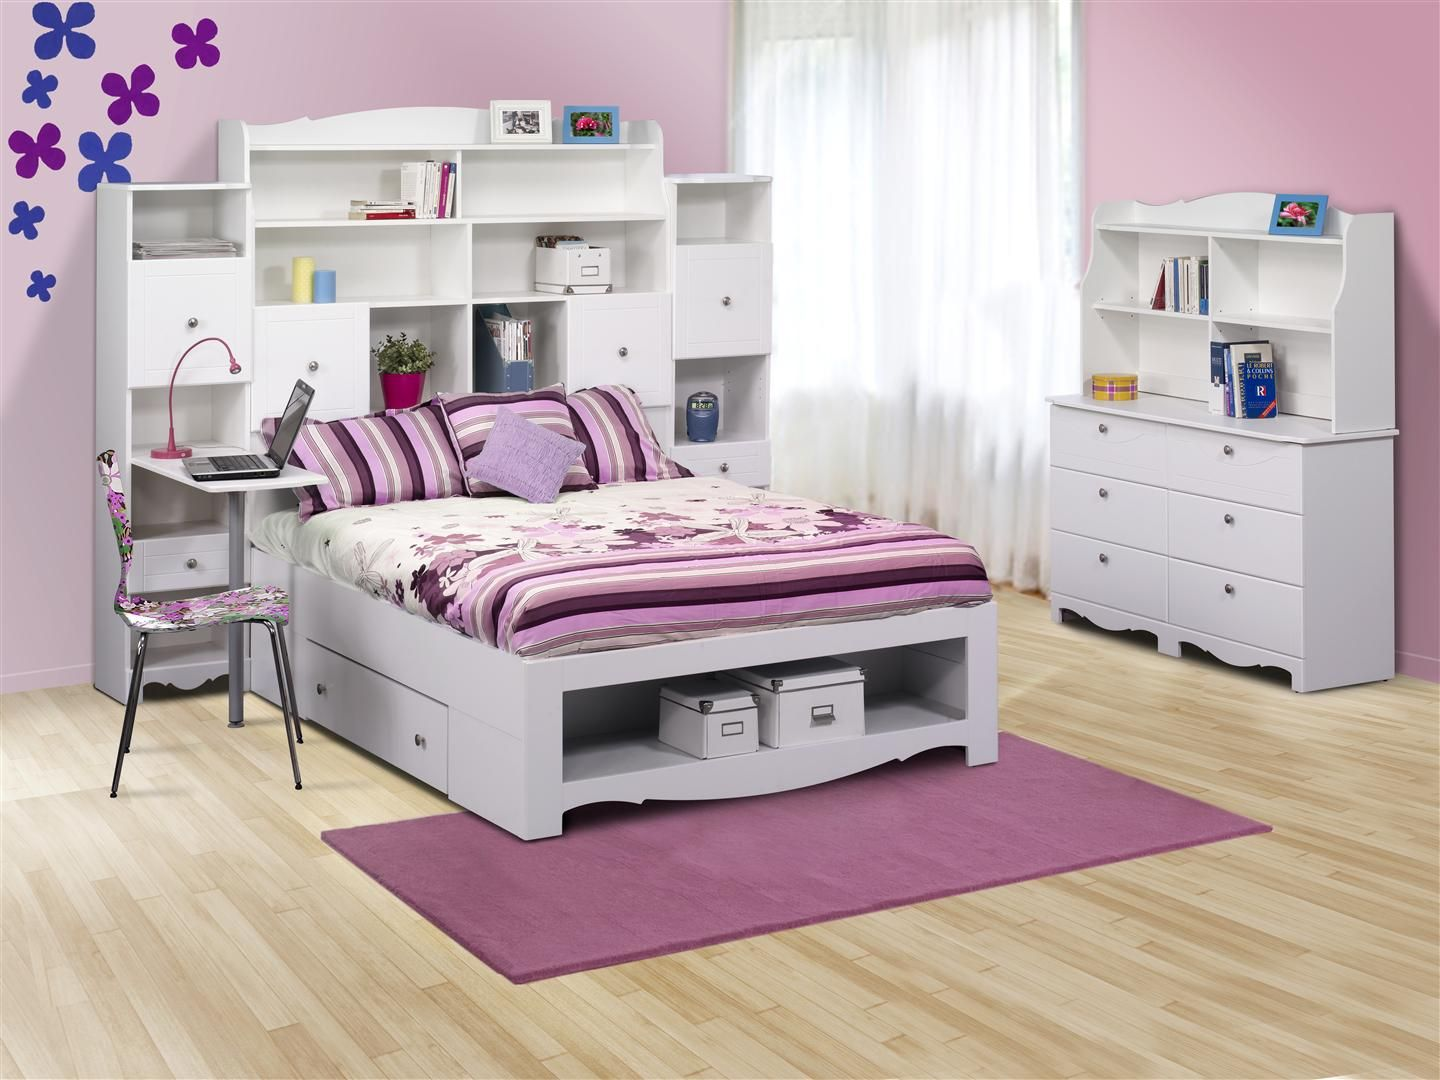 Pretty Bedroom For Girls With Wooden Floor And White